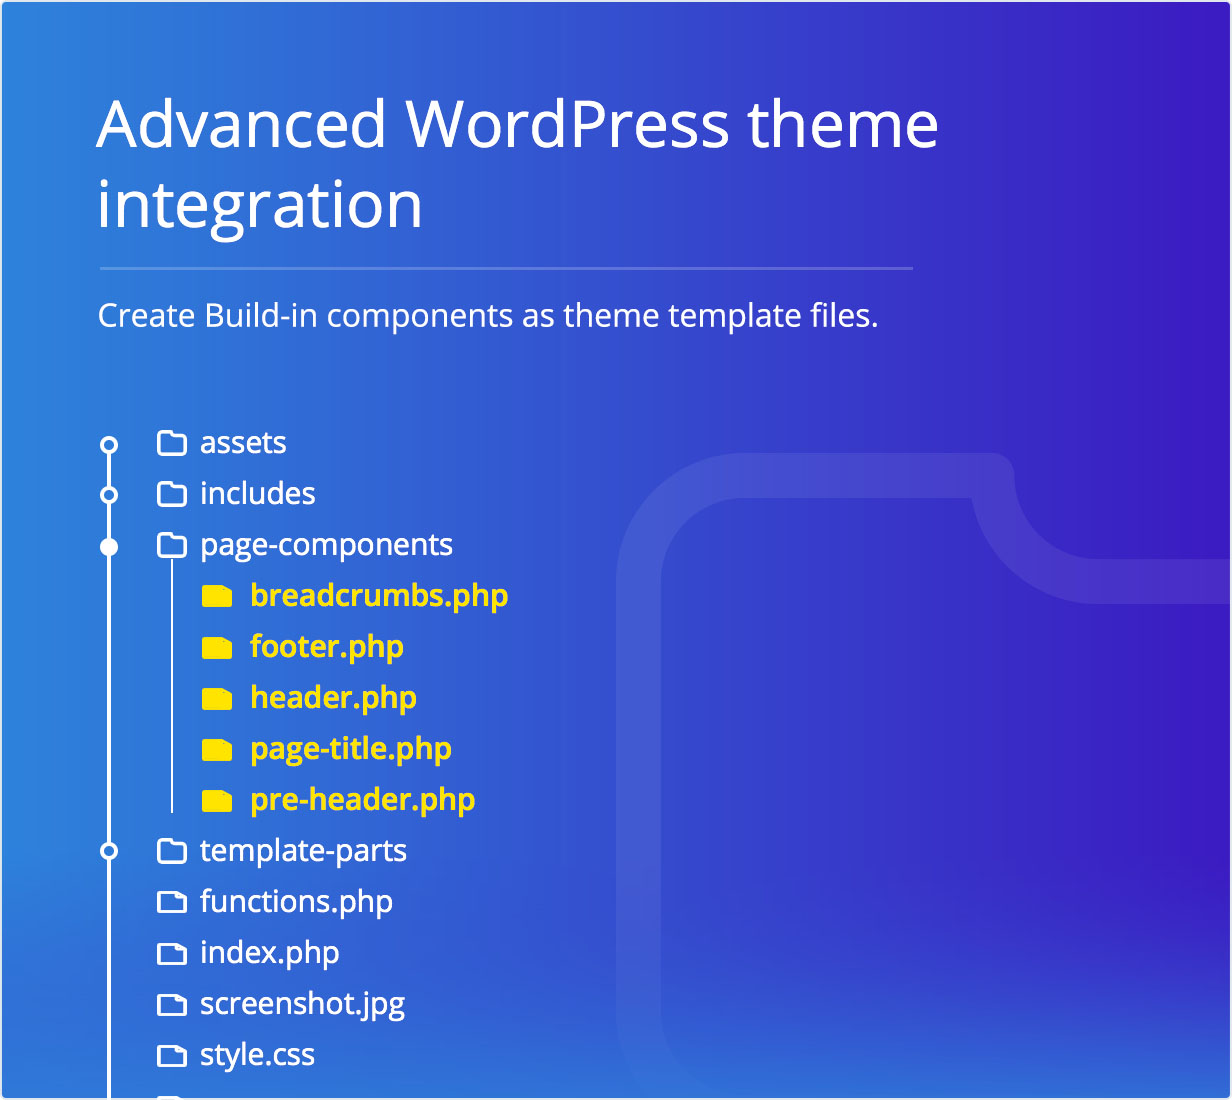 Advanced WordPress theme integration Create Build-in components as theme template files.